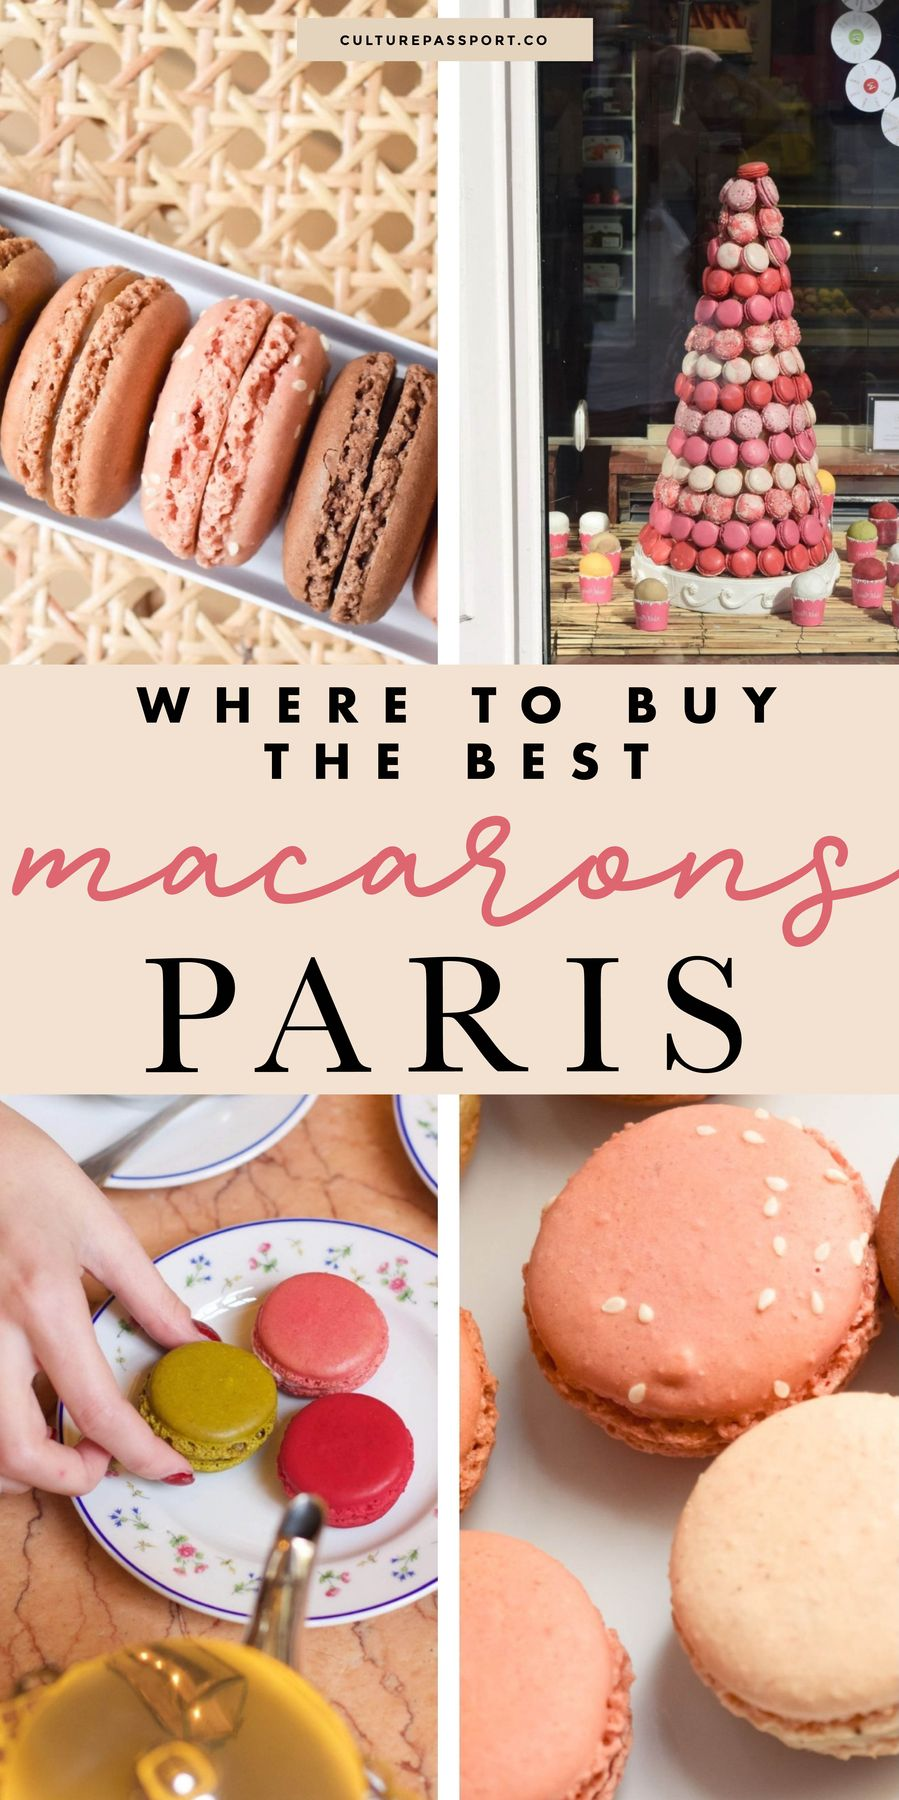 Where To Buy The Best Macarons In Paris! #macarons #paristips #paristravel #parisguide